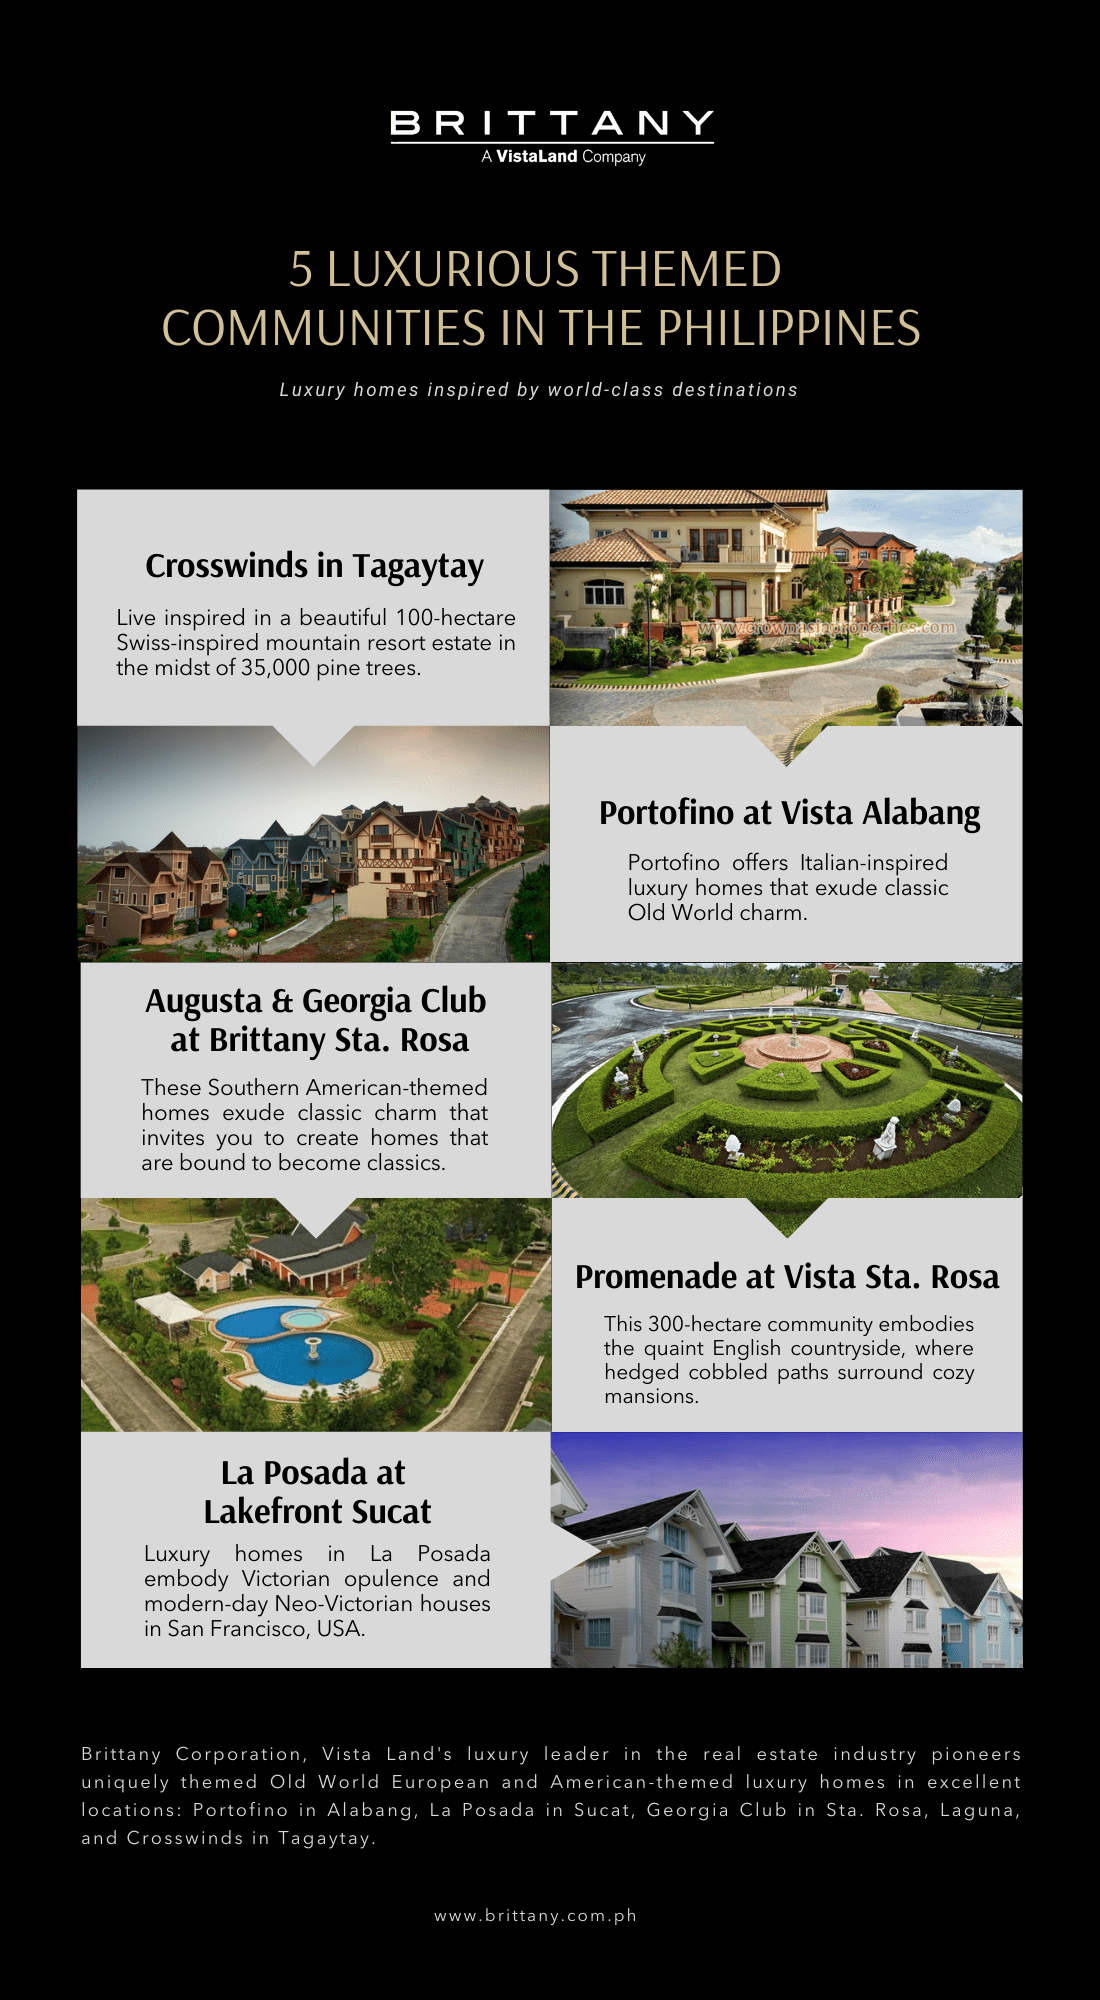 Infographic about luxury themed communitied in Sta. Rosa, Alabang, and Tagaytay, by Brittany Corporation